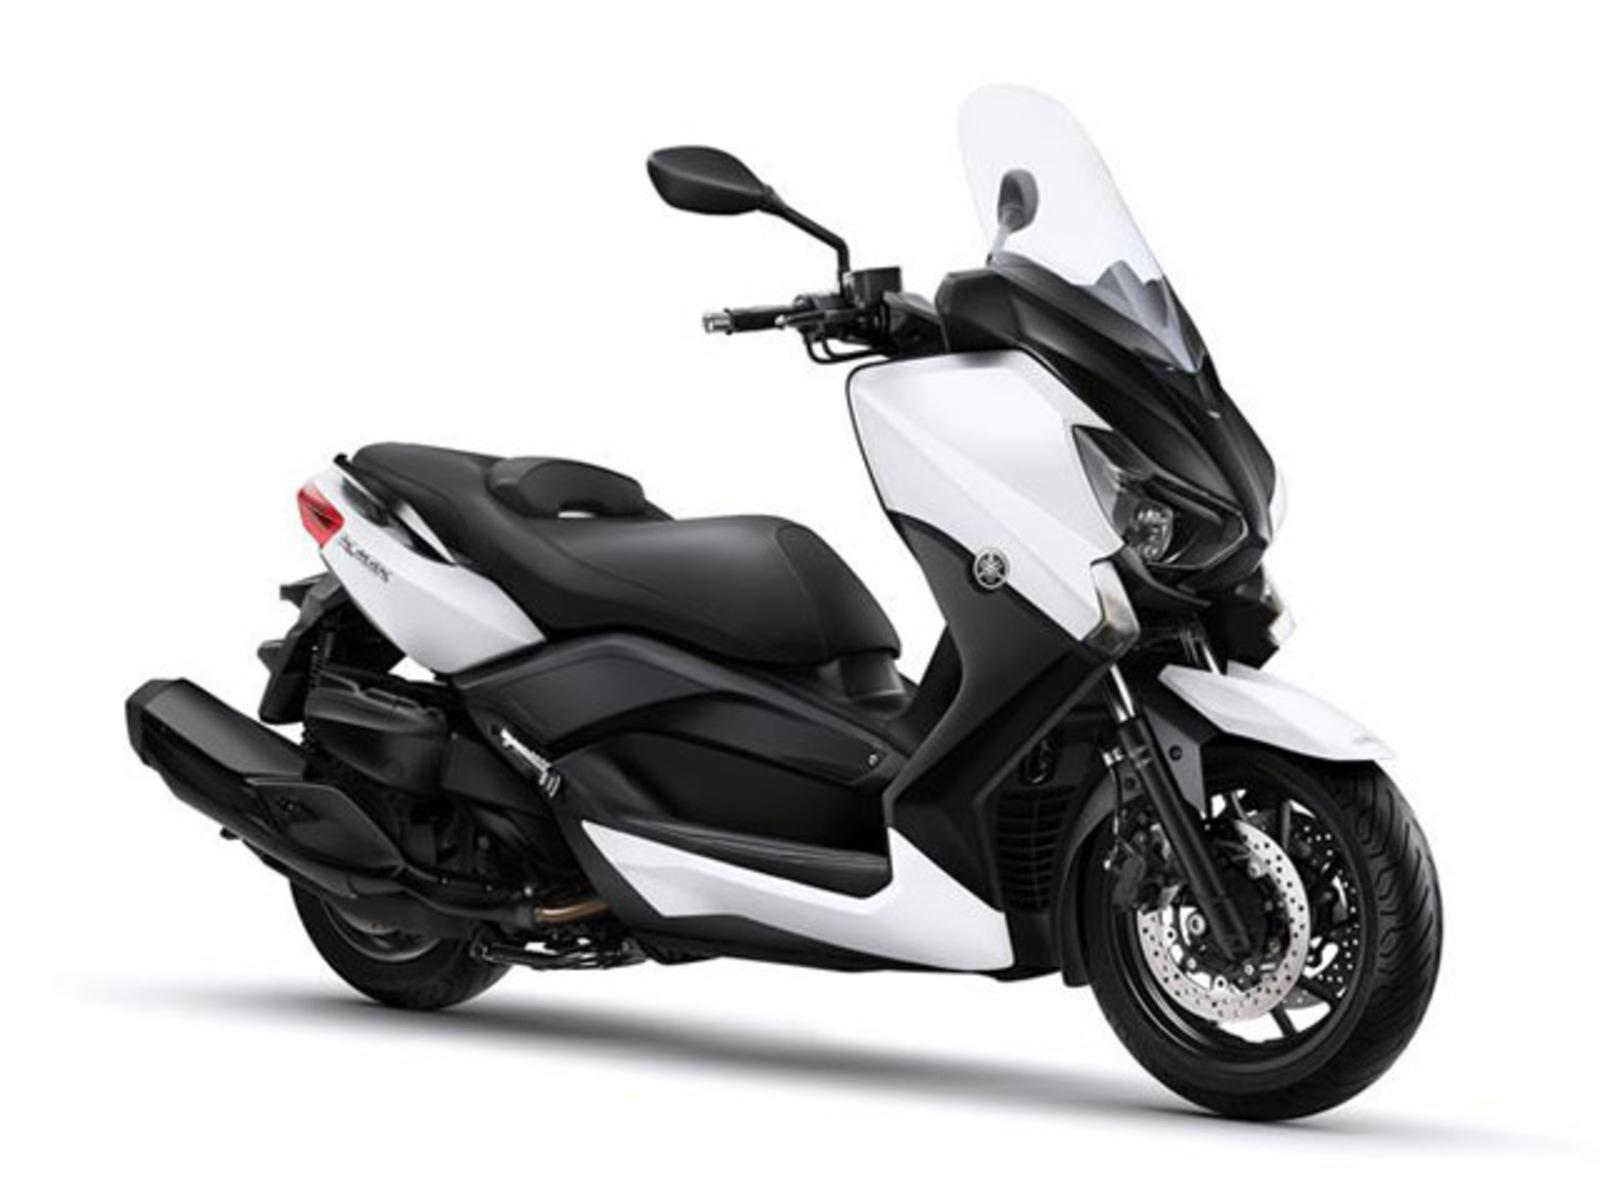 2015 yamaha x max 400 review gallery top speed. Black Bedroom Furniture Sets. Home Design Ideas